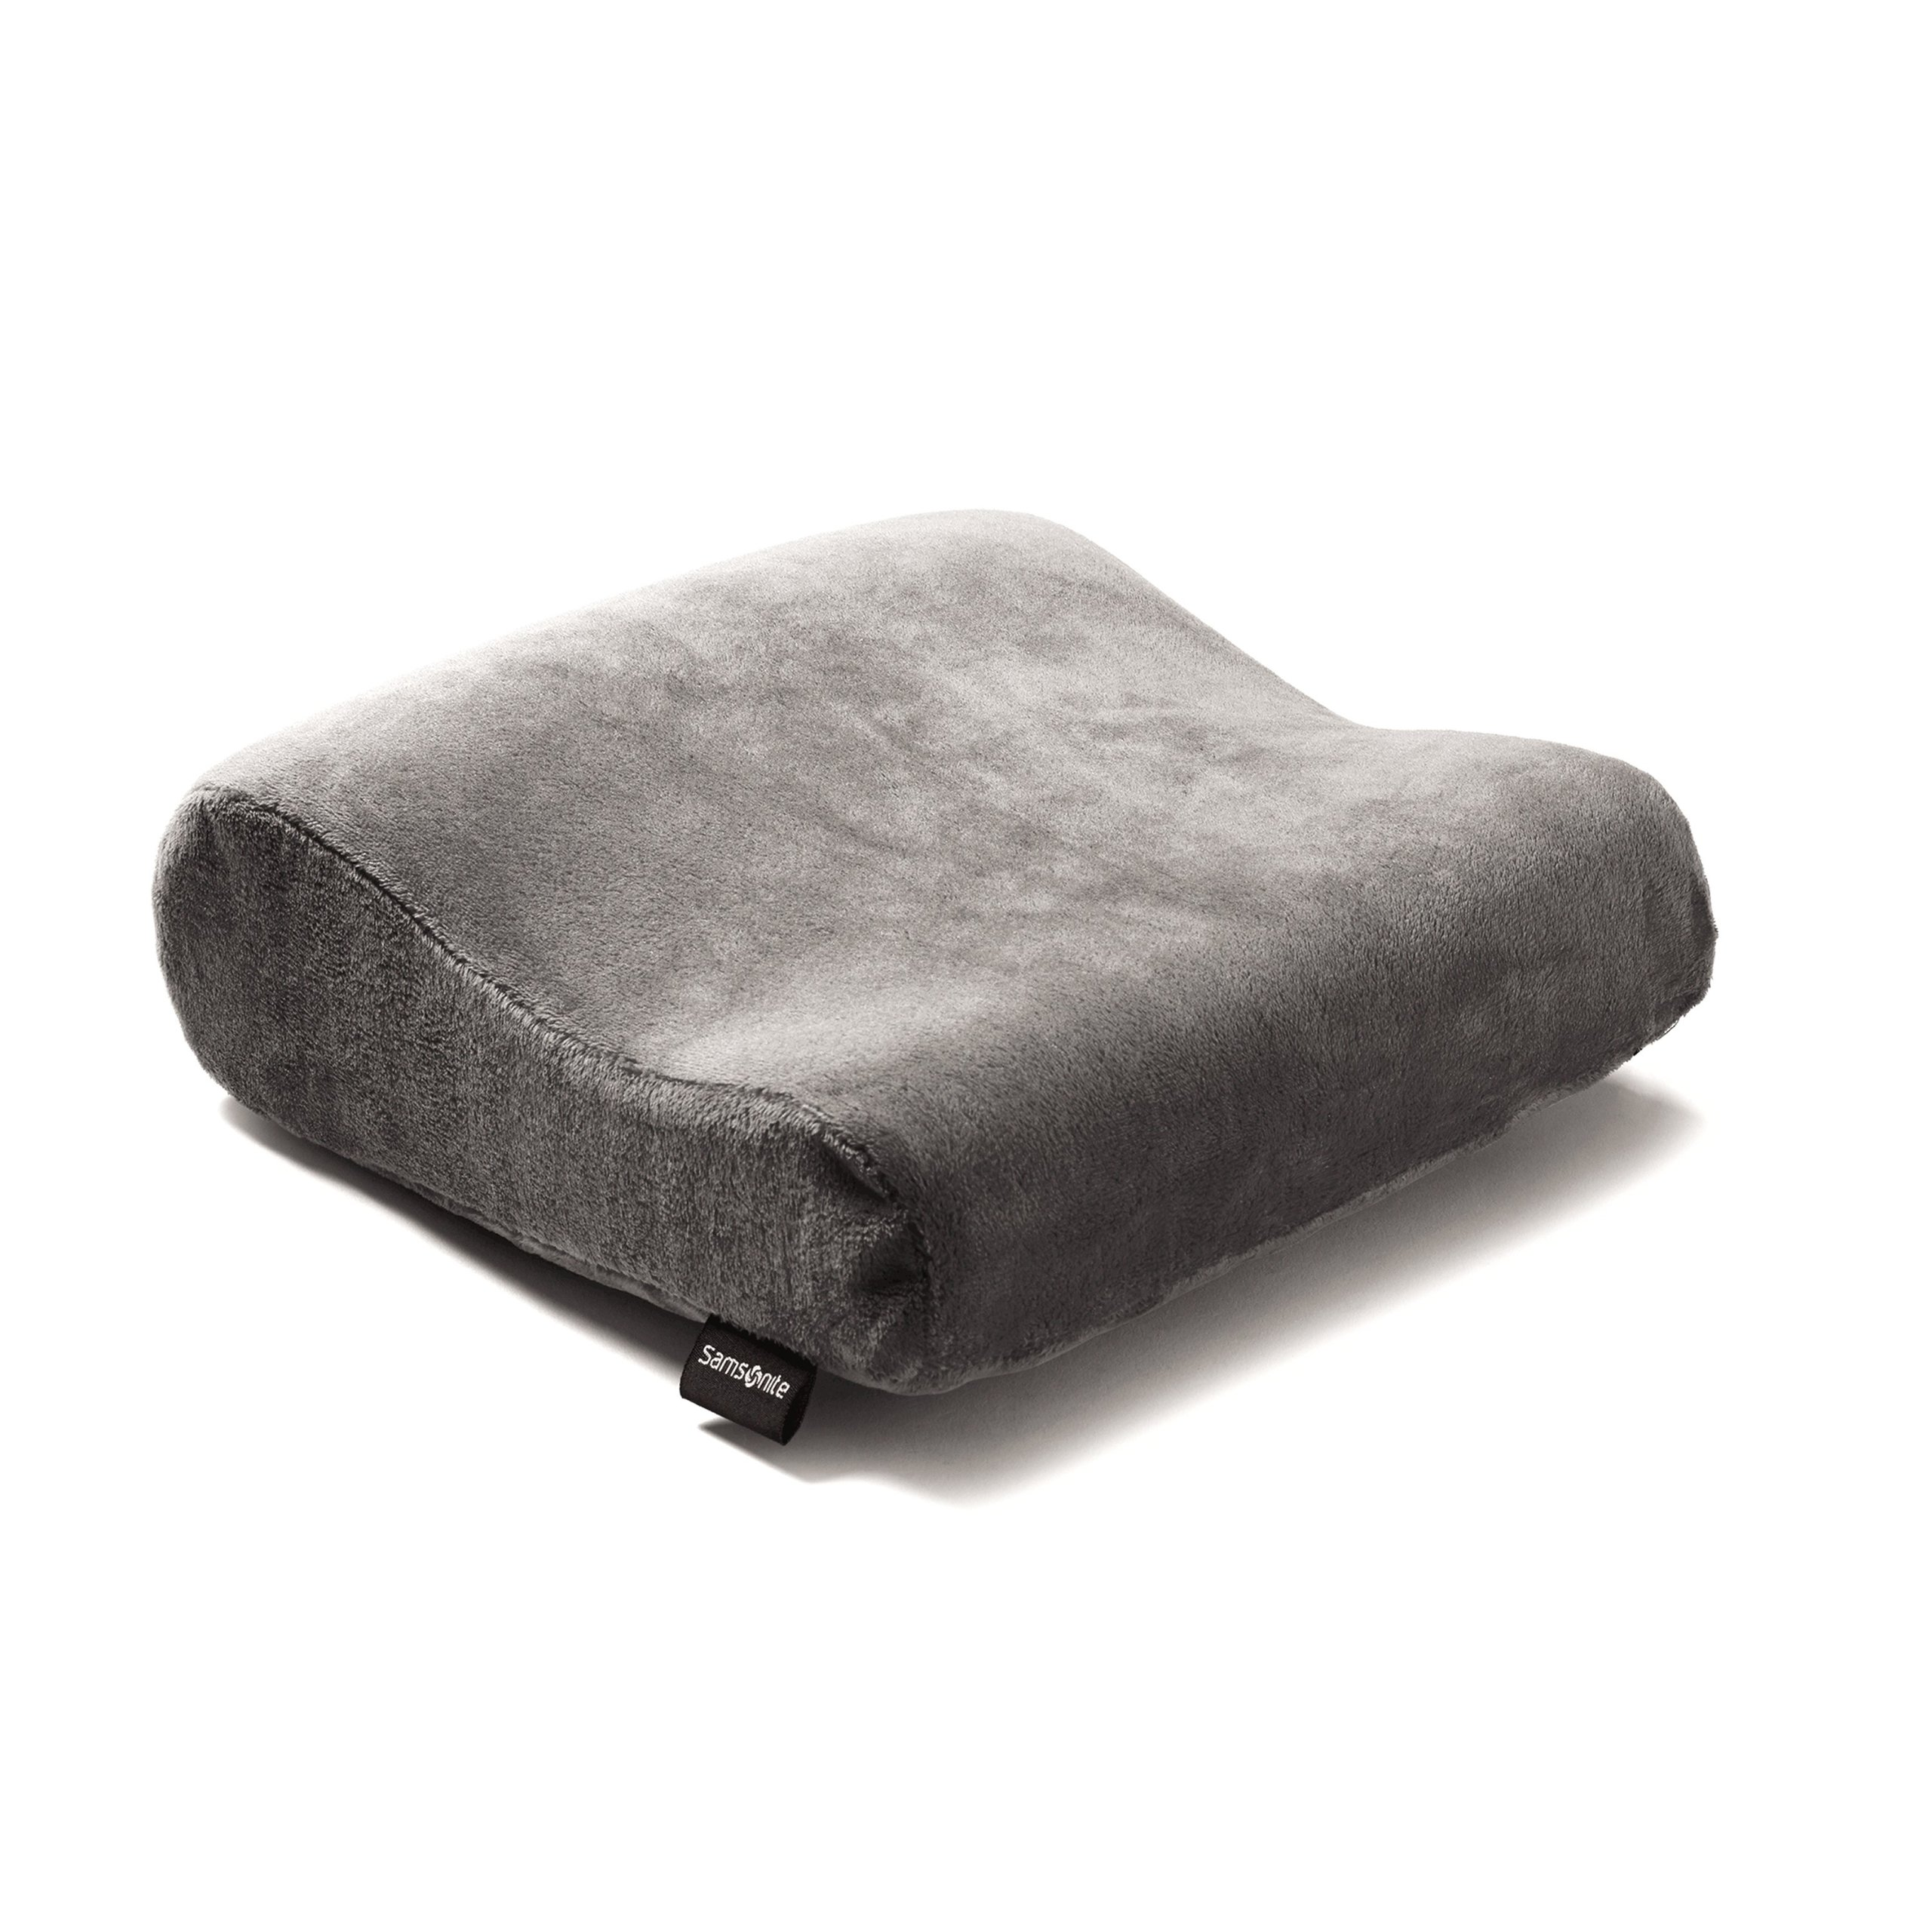 Samsonite Rectangle Memory Neck Pillow Charcoal by Samsonite